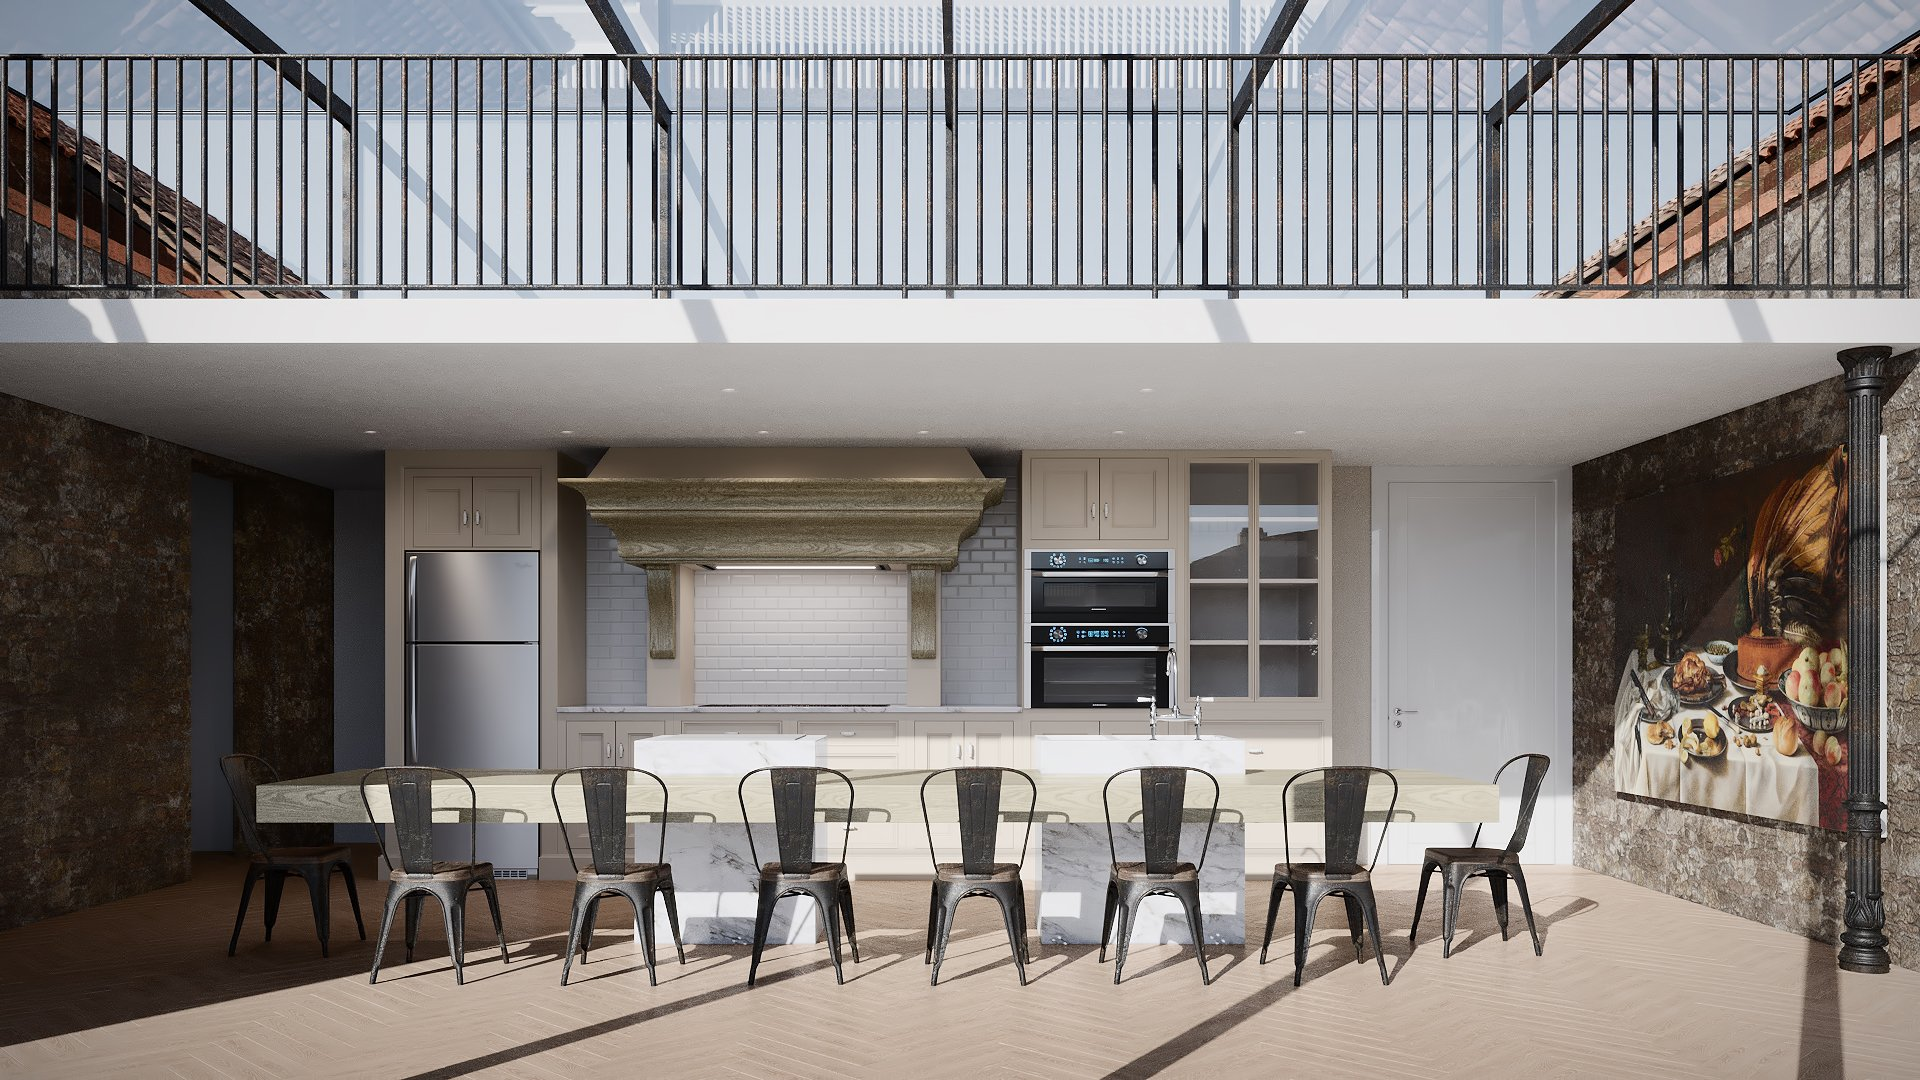 A Raw Draft of a Kitchen Architectural VIsualization